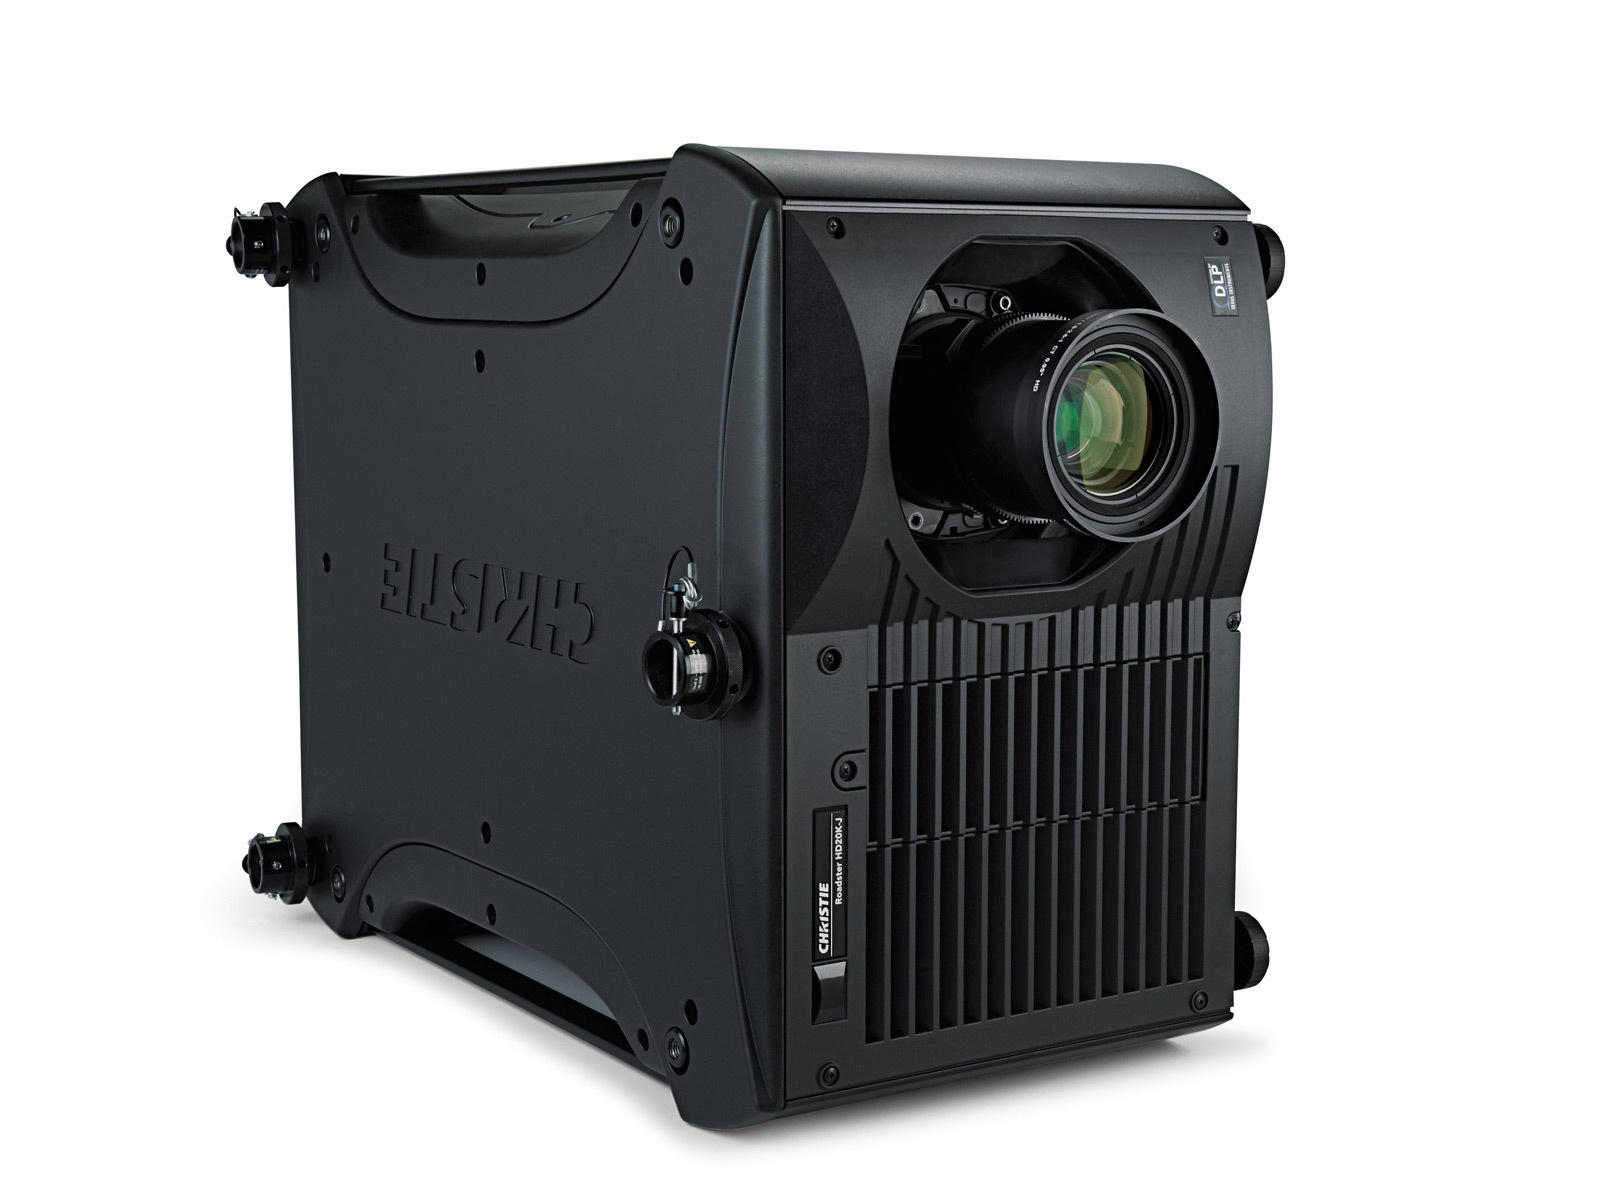 /globalassets/.catalog/products/images/roadster-s22k-j/gallery/roadster-hd14k-j-3-chip-dlp-projector-12.jpg